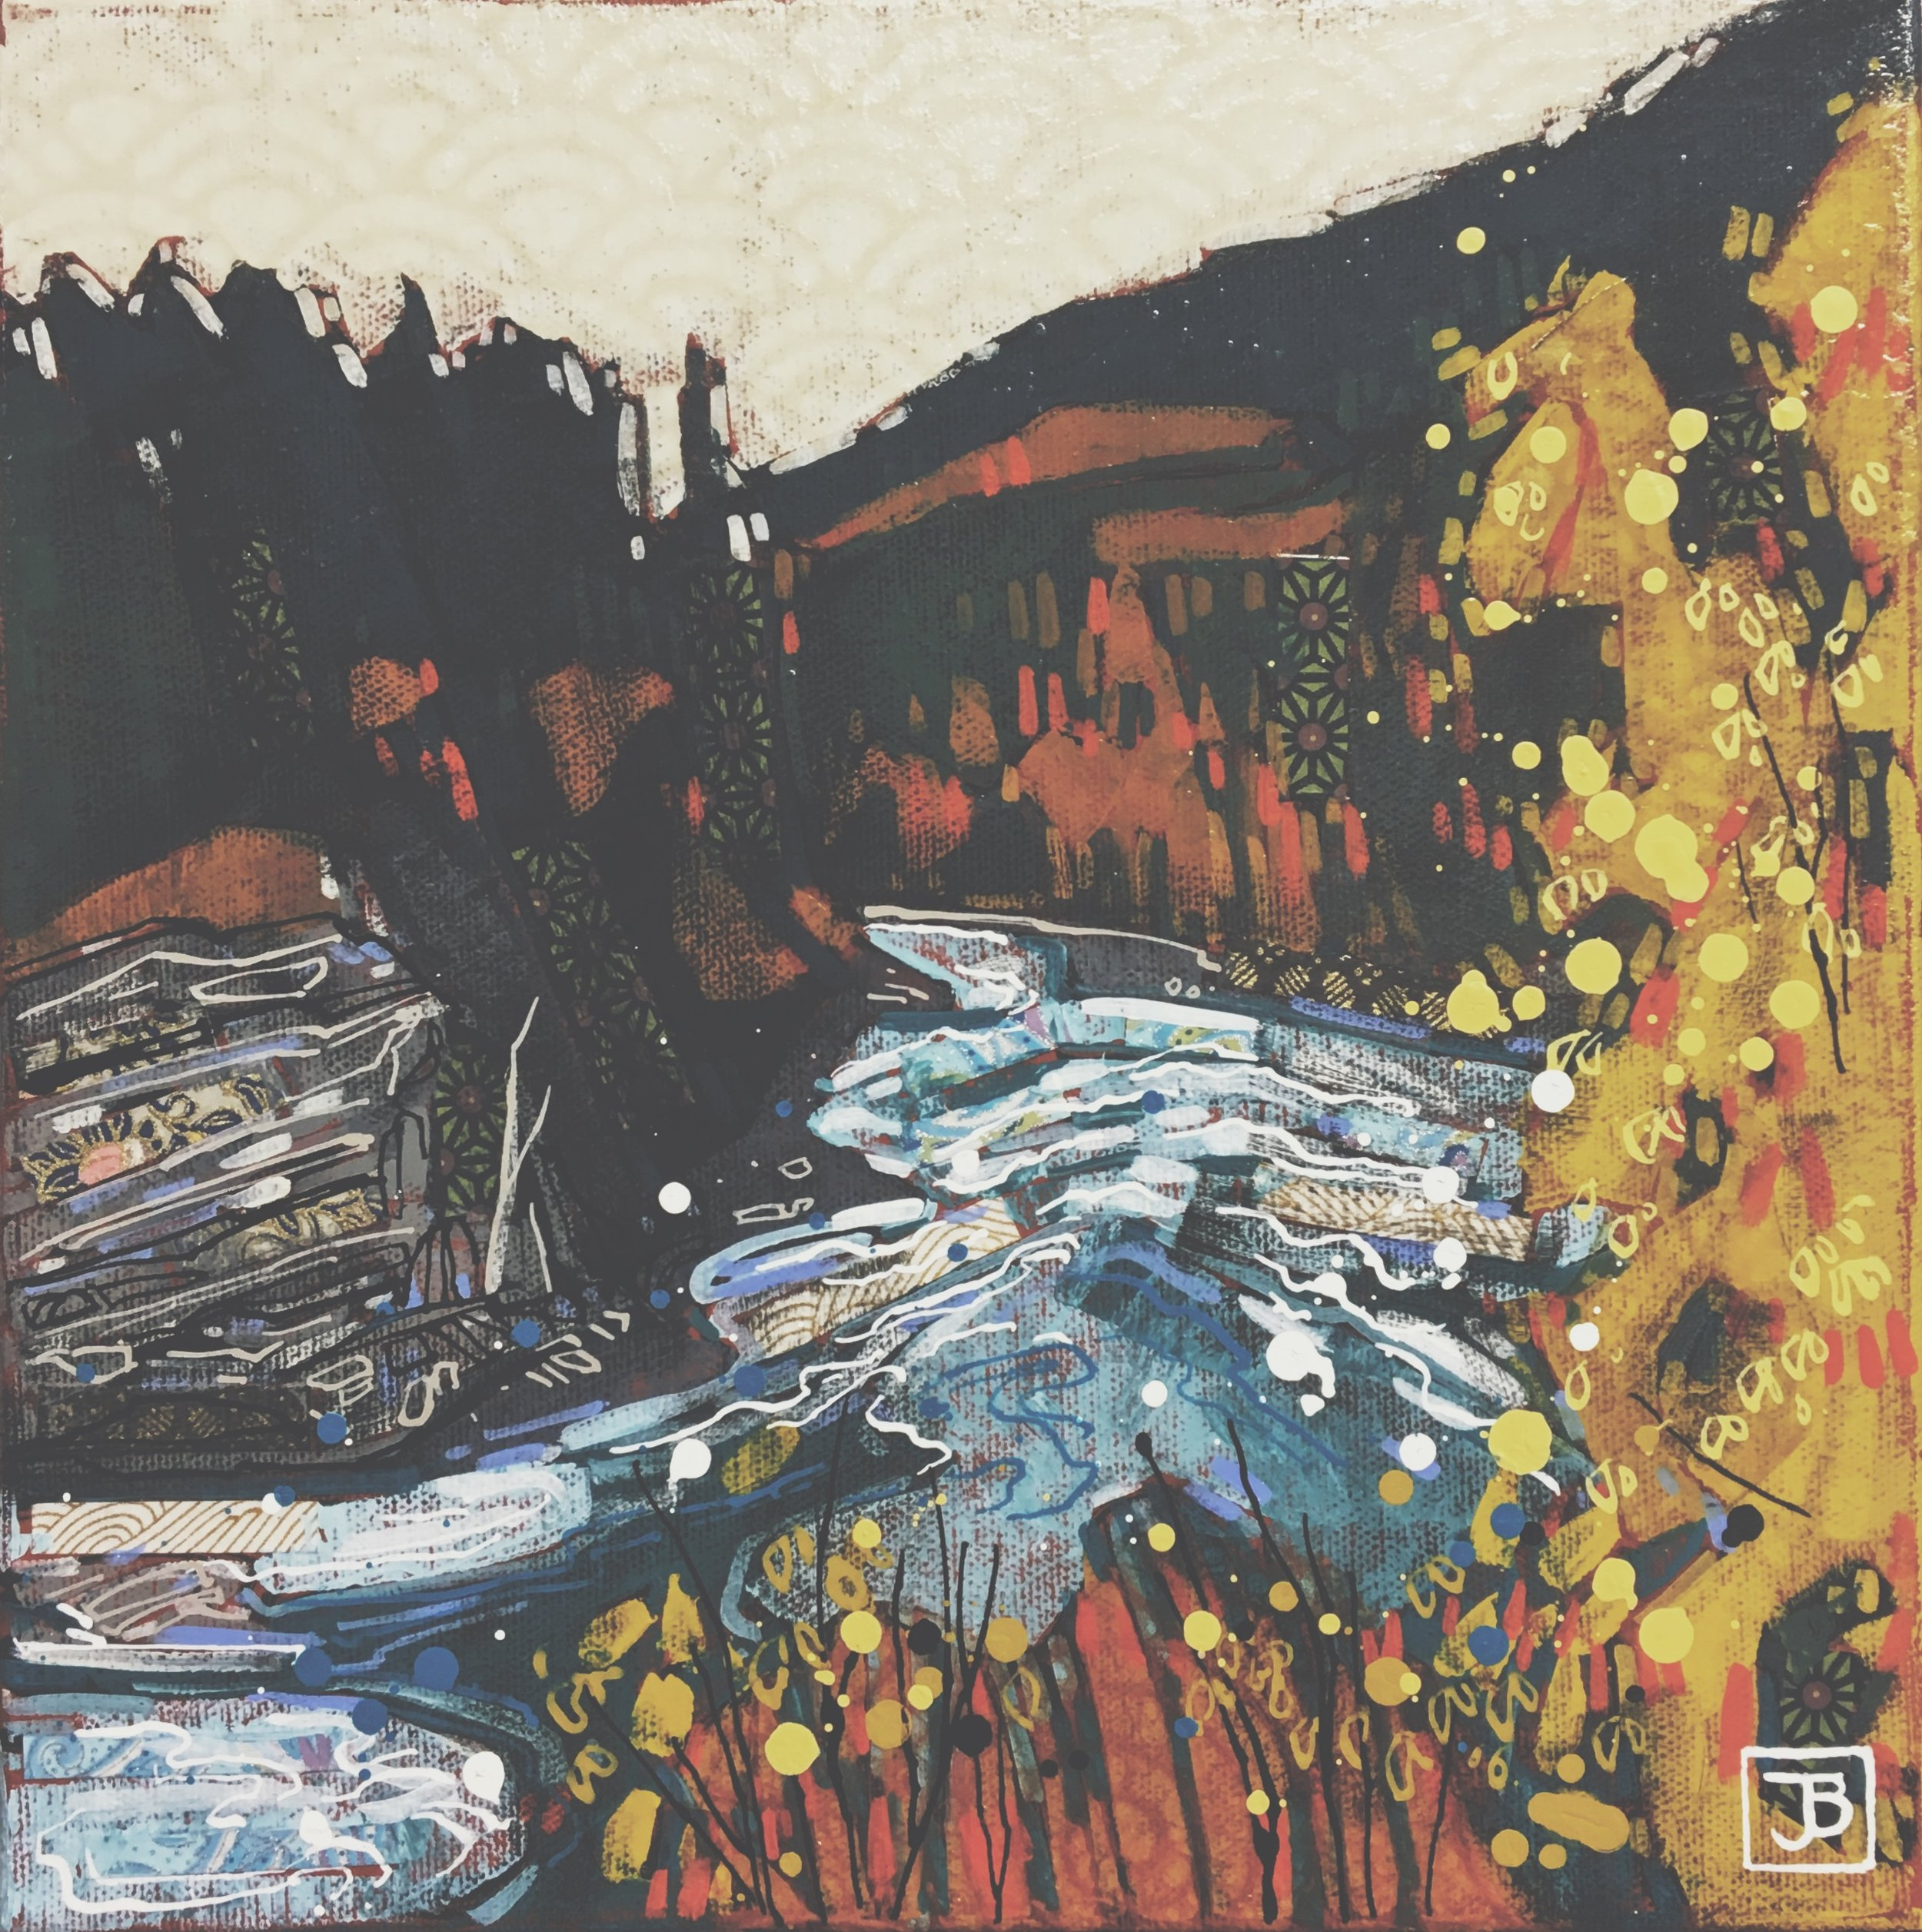 after the falls, rearguard falls, BC,  mixed media on canvas, 10x10(in), $200 + GST,  2018